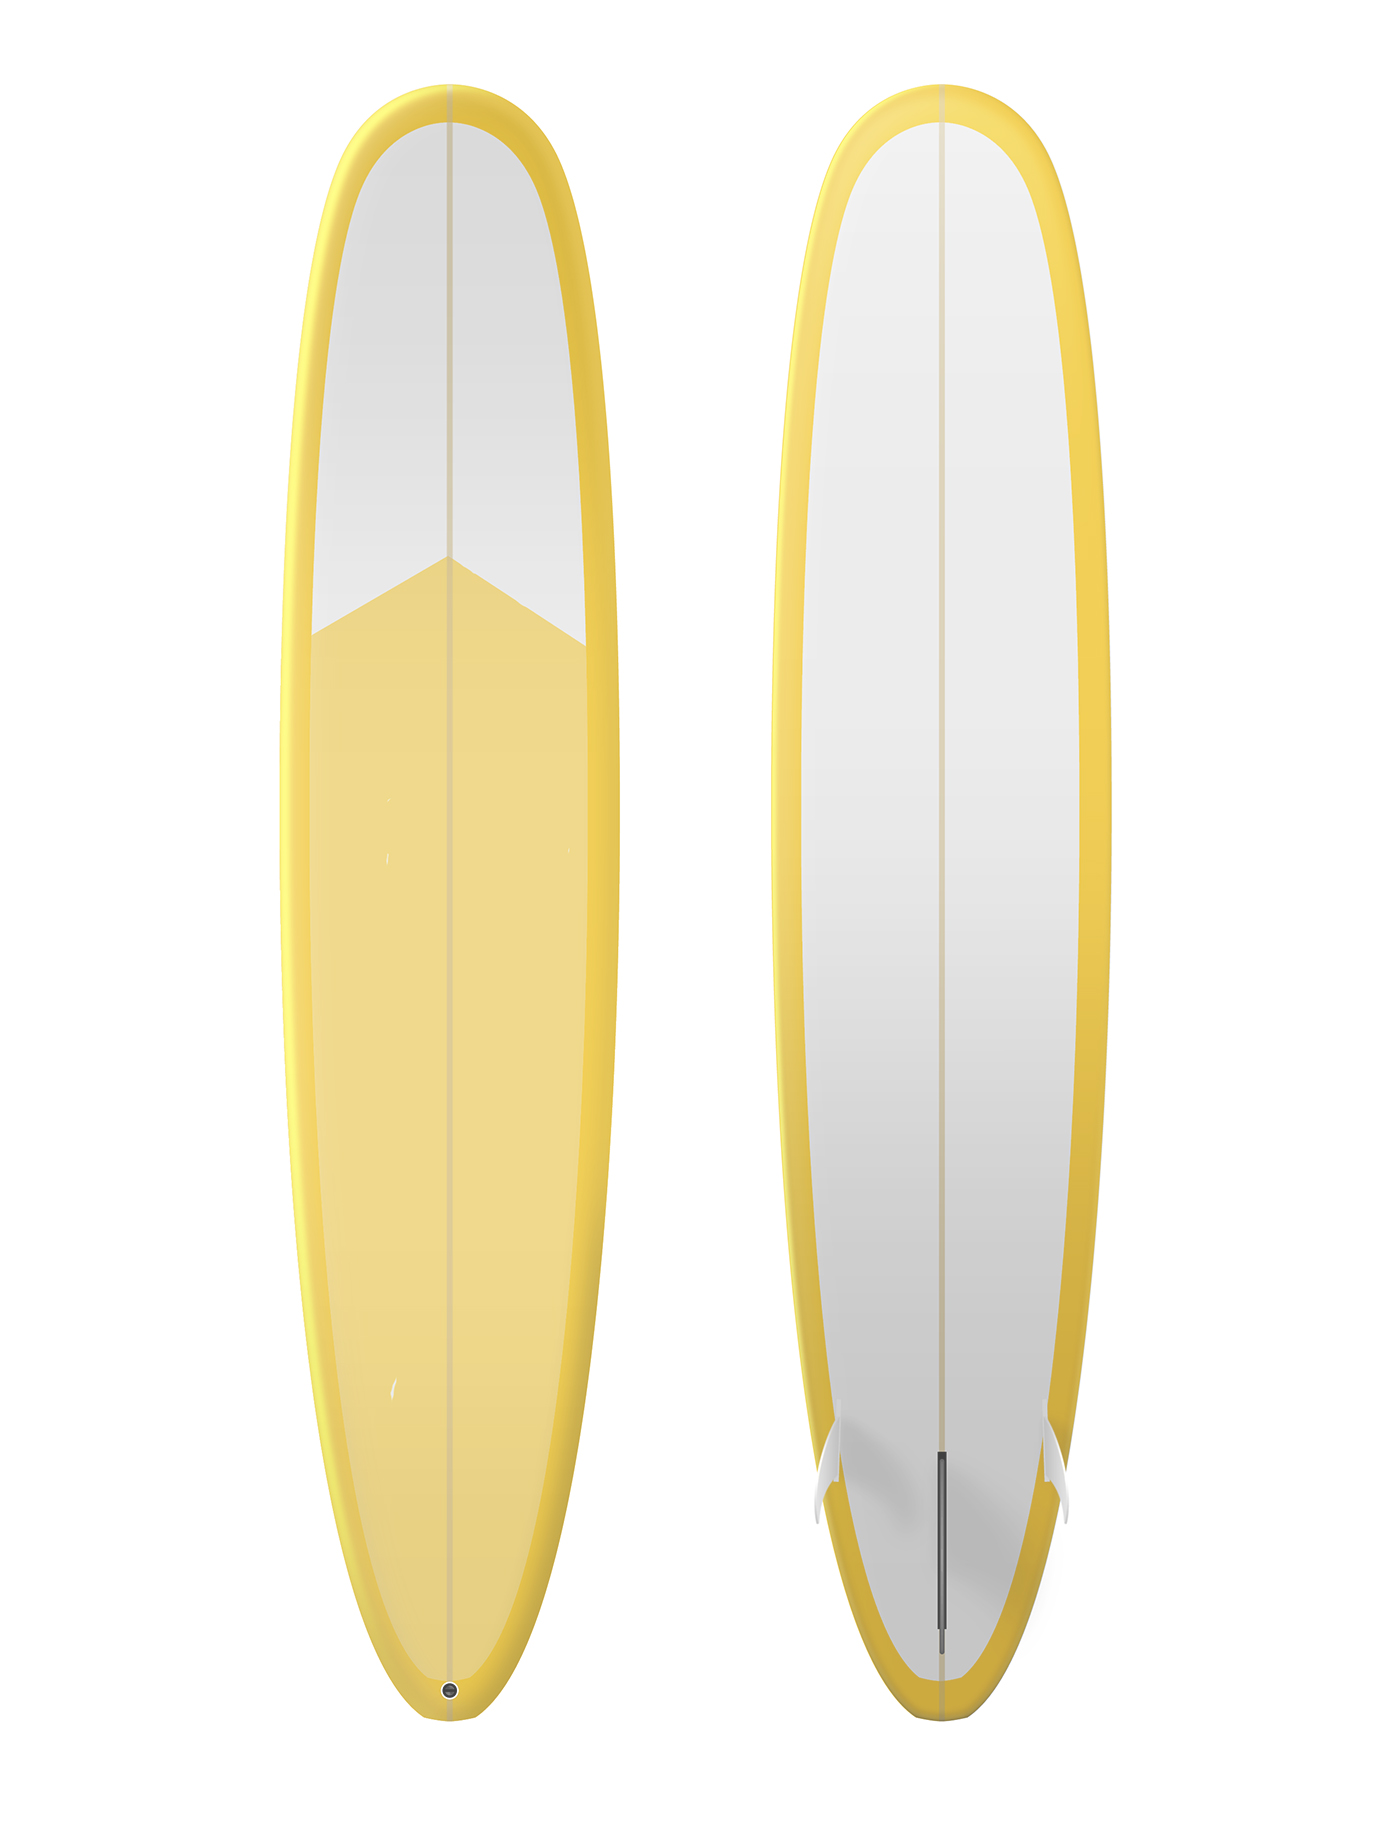 Yellow and white surfboard